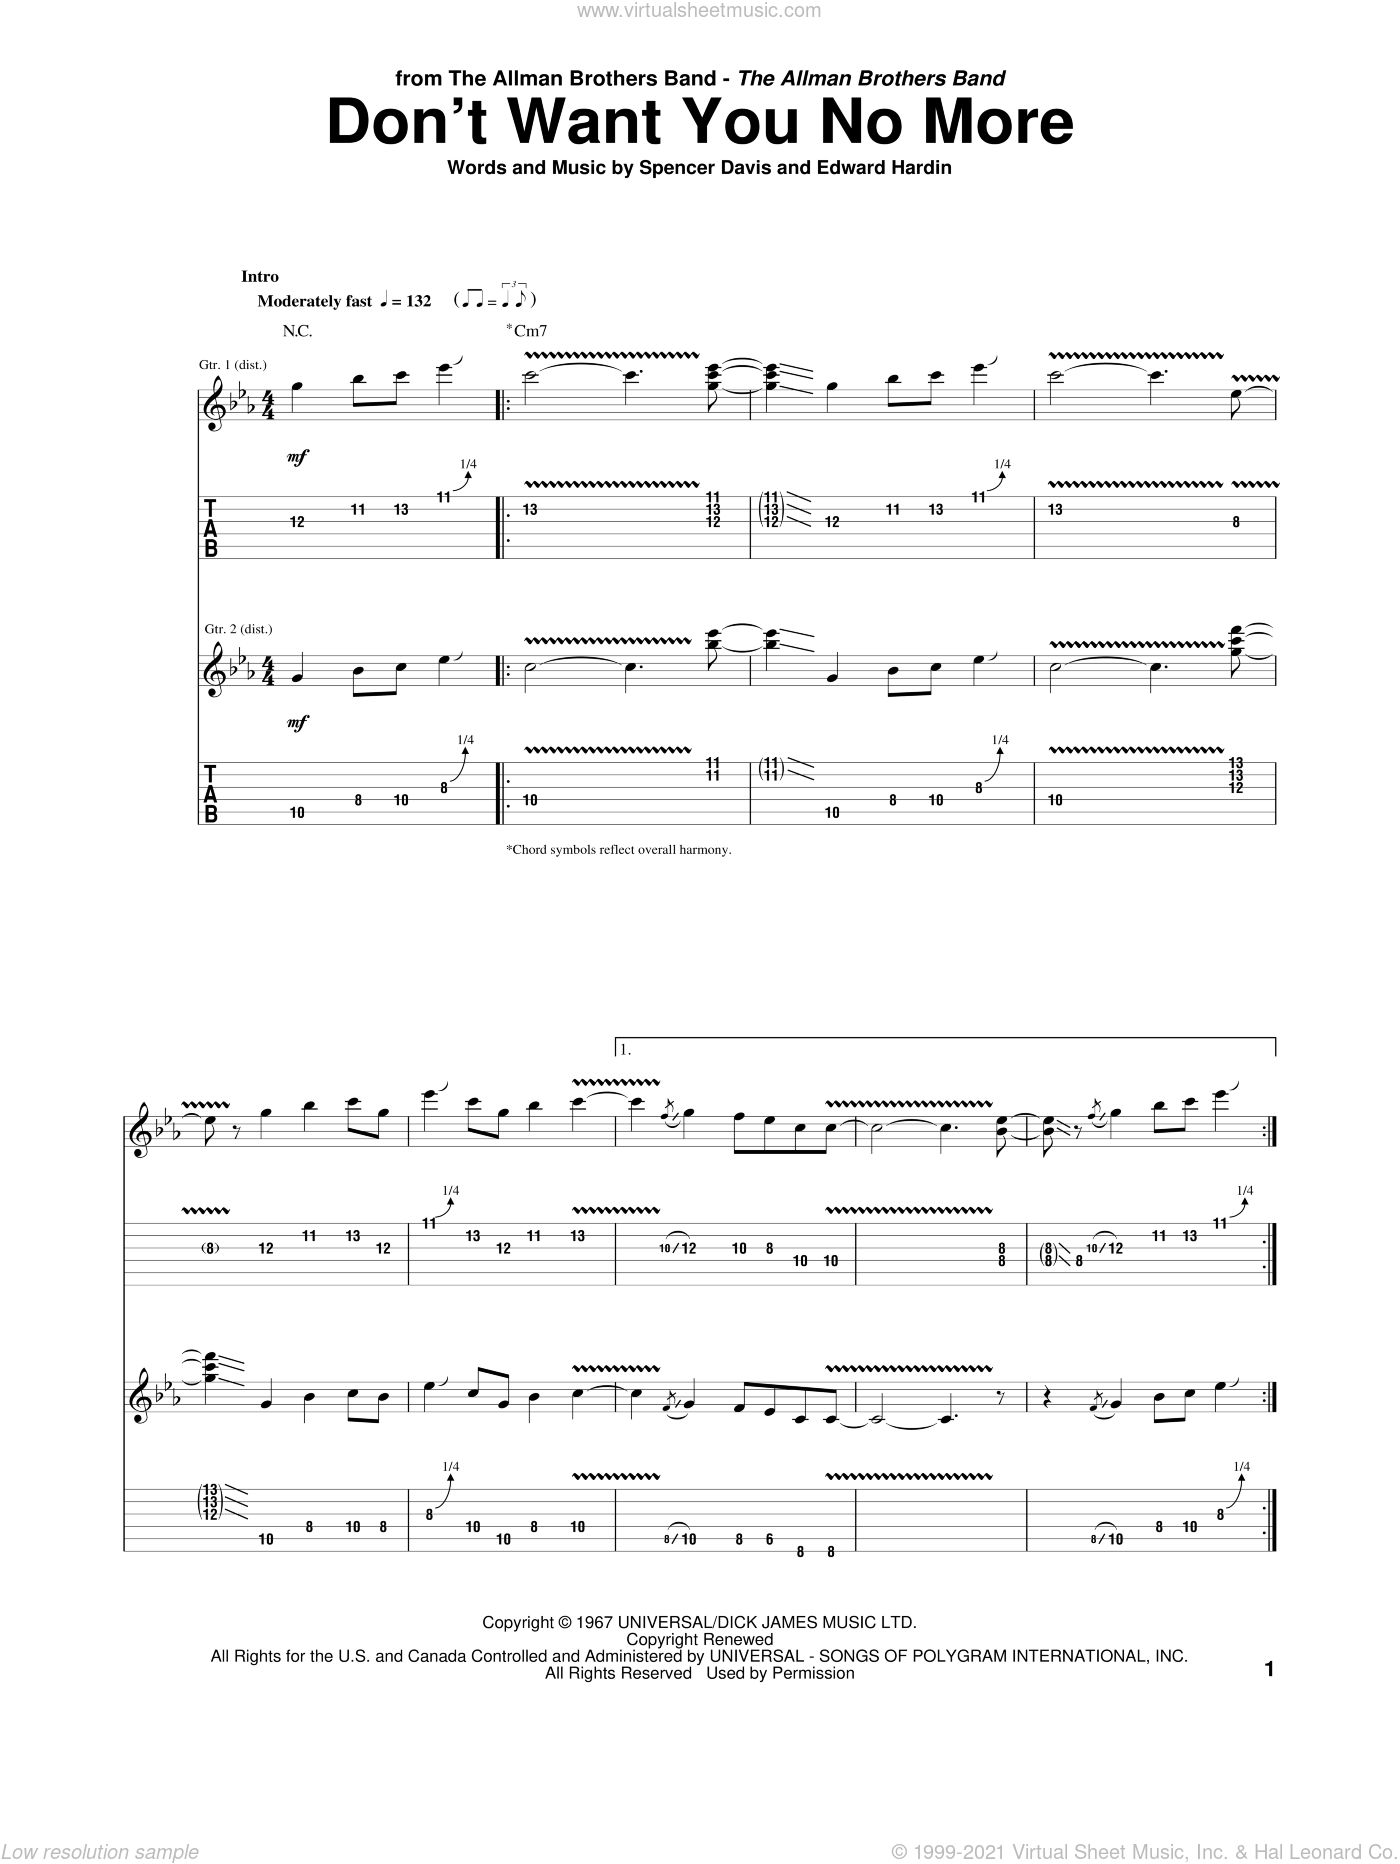 Don't Want You No More sheet music for guitar (tablature) by Allman Brothers Band